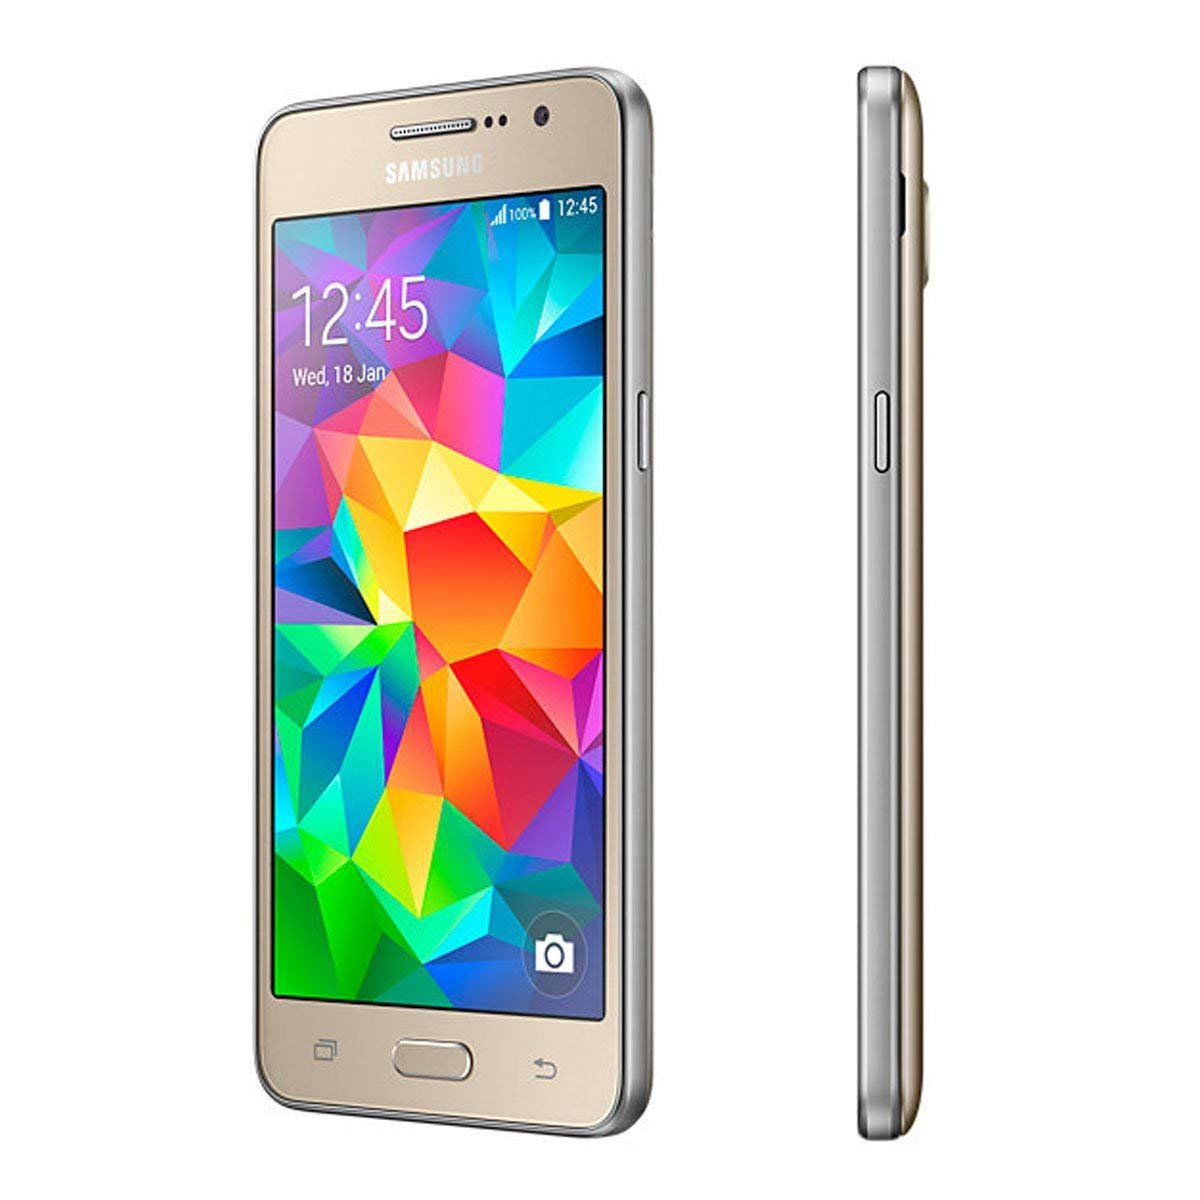 1a3d9db094f Amazon.com  Samsung Galaxy Grand Prime - Unlocked Phone - Gold  Cell Phones    Accessories